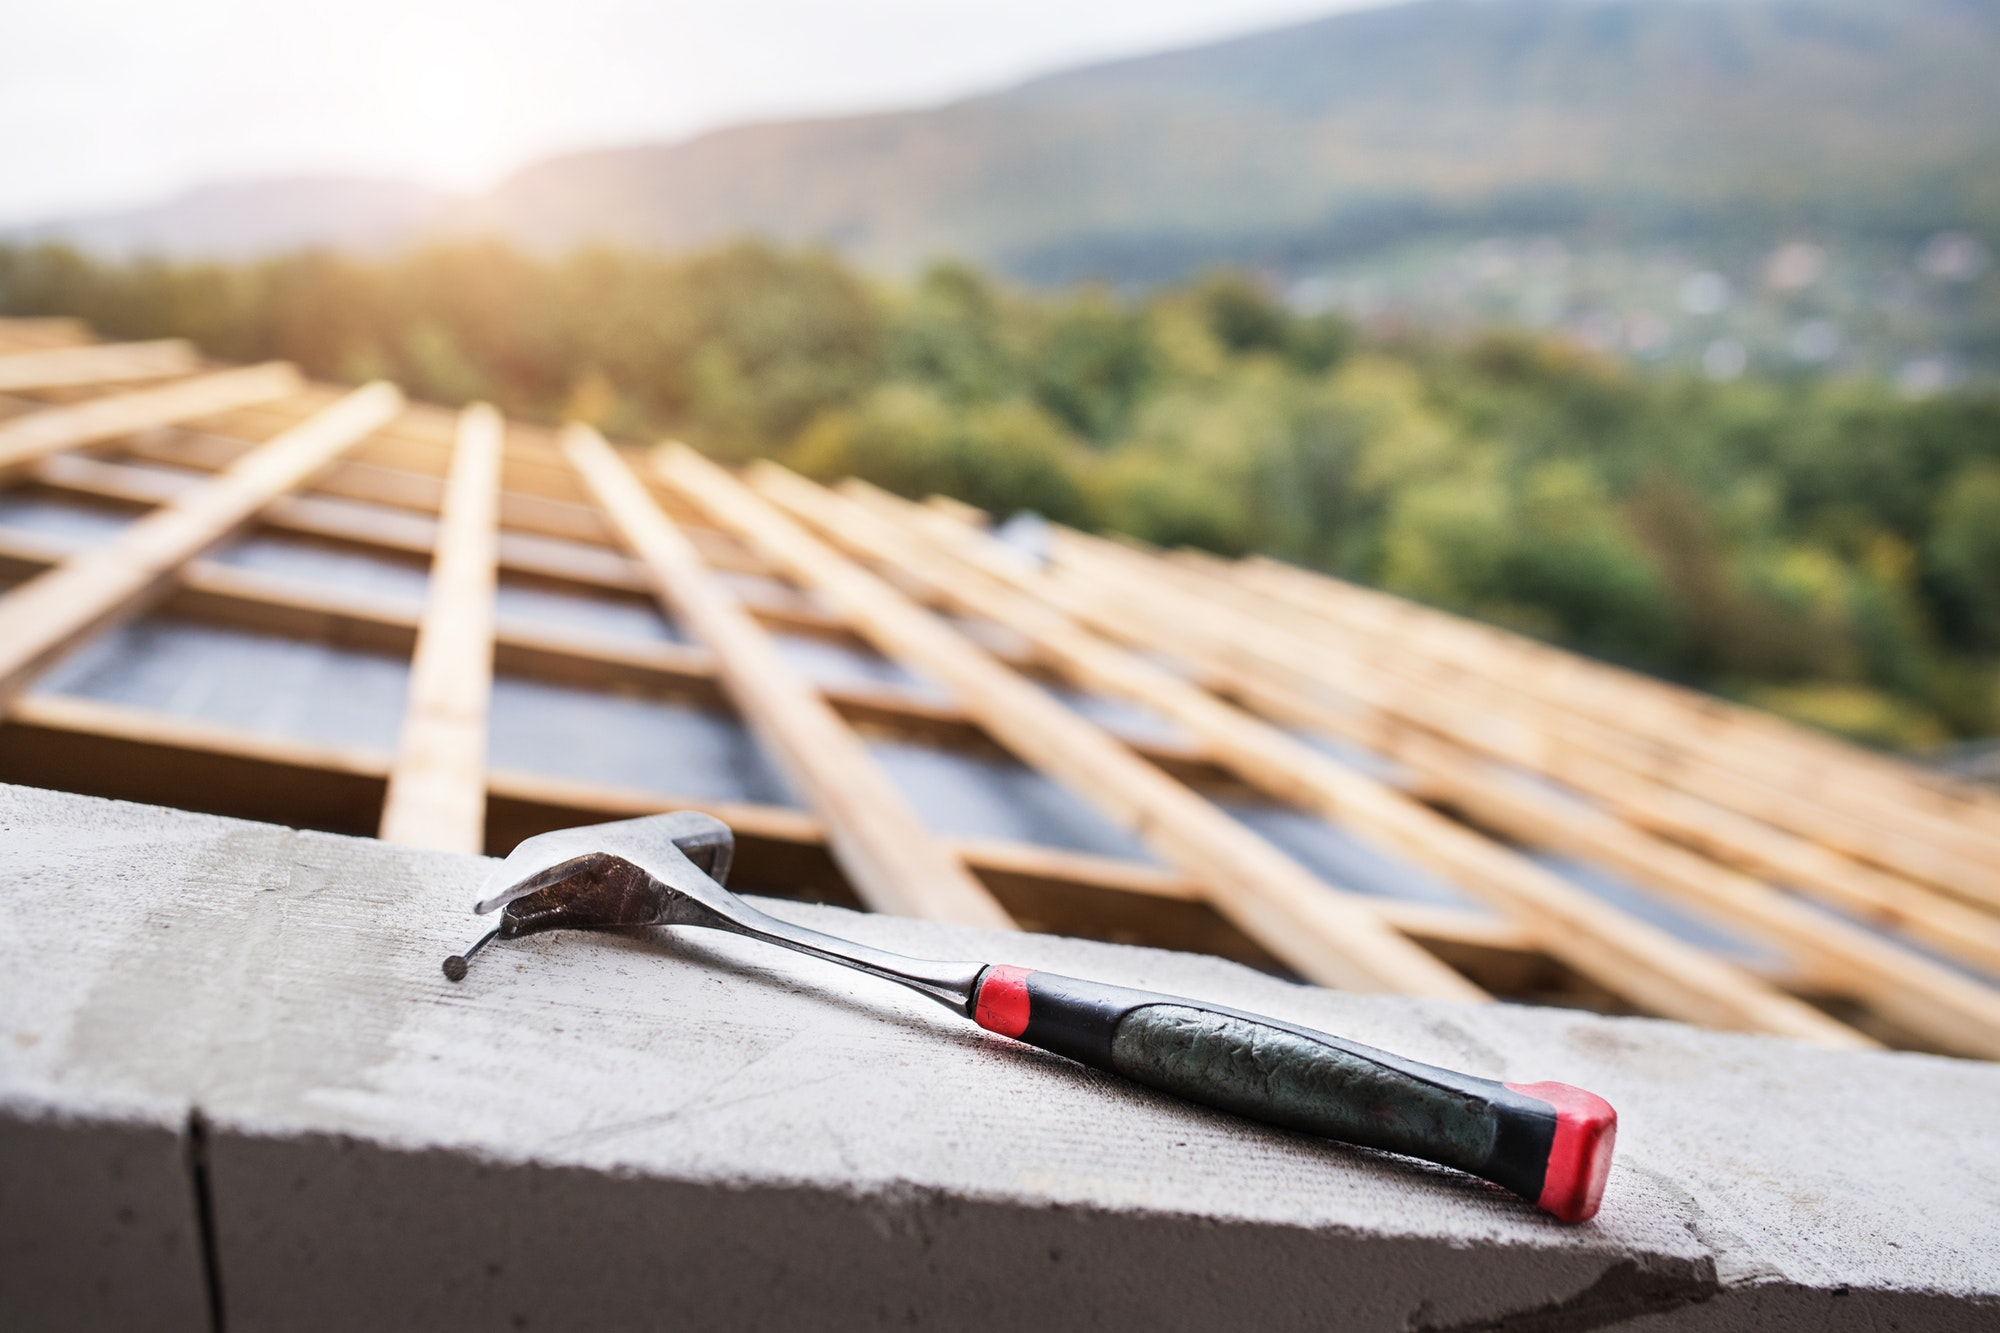 hammer-on-the-roof-on-the-construction-site-